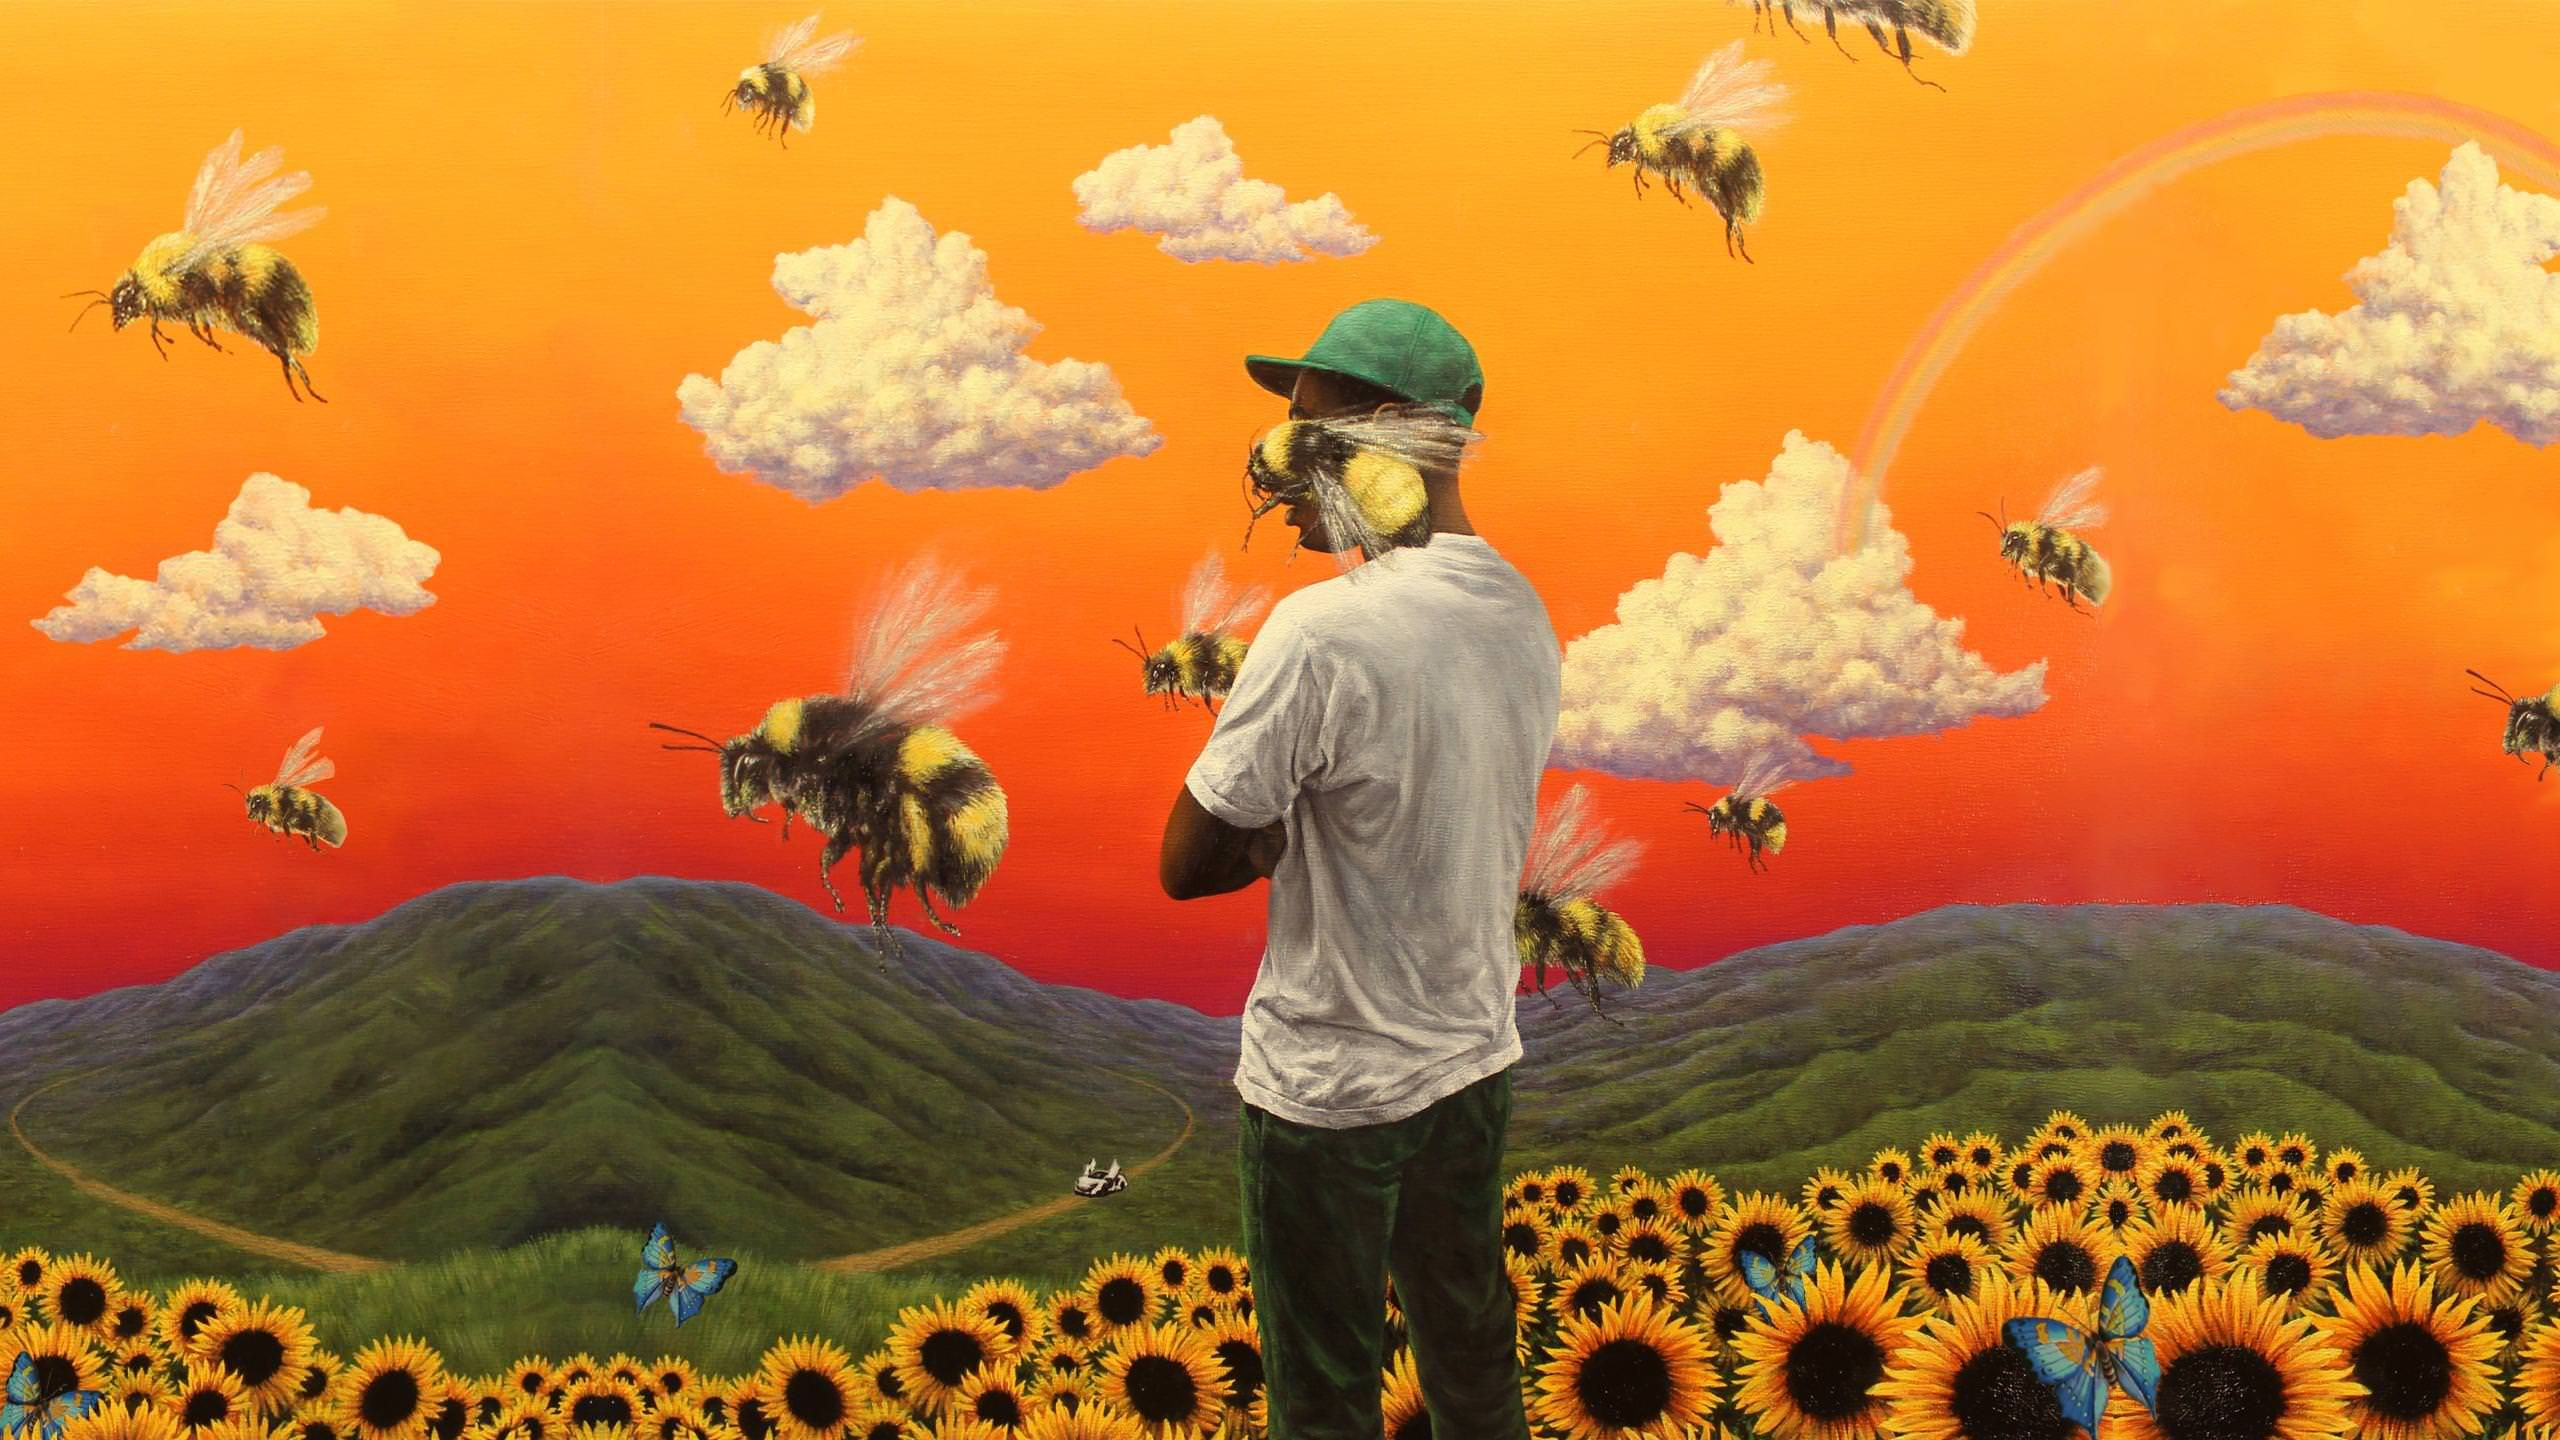 Pin by Louise Adnitt on Tyler, The Creator Flower boys